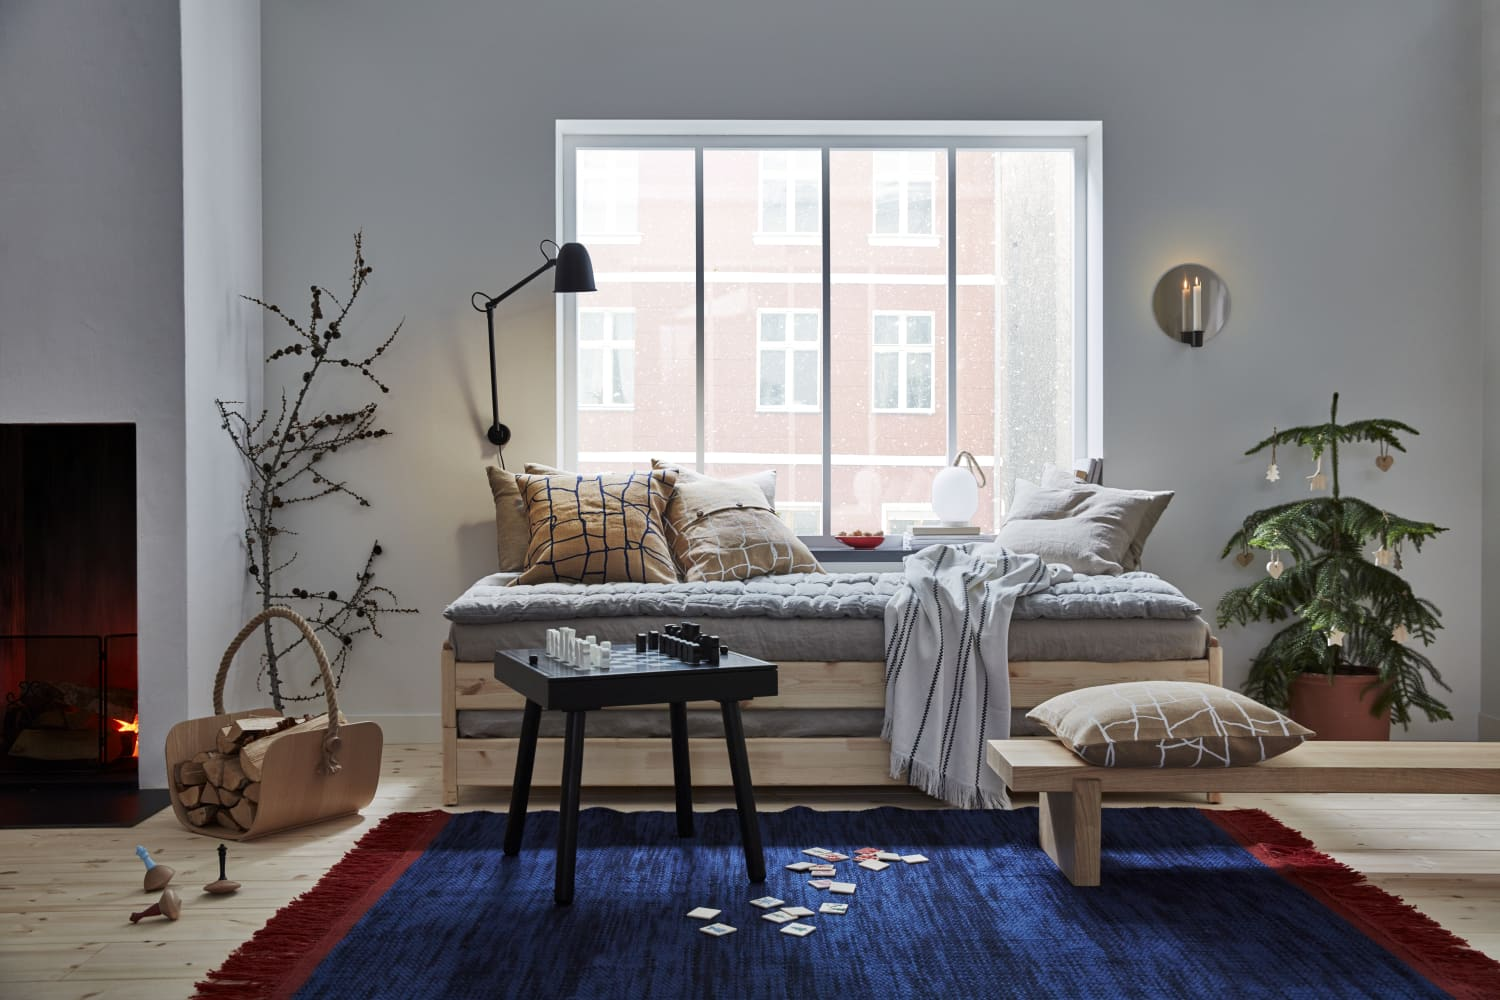 ikea u0026 39 s new varmer holiday 2019 collection is so cozy